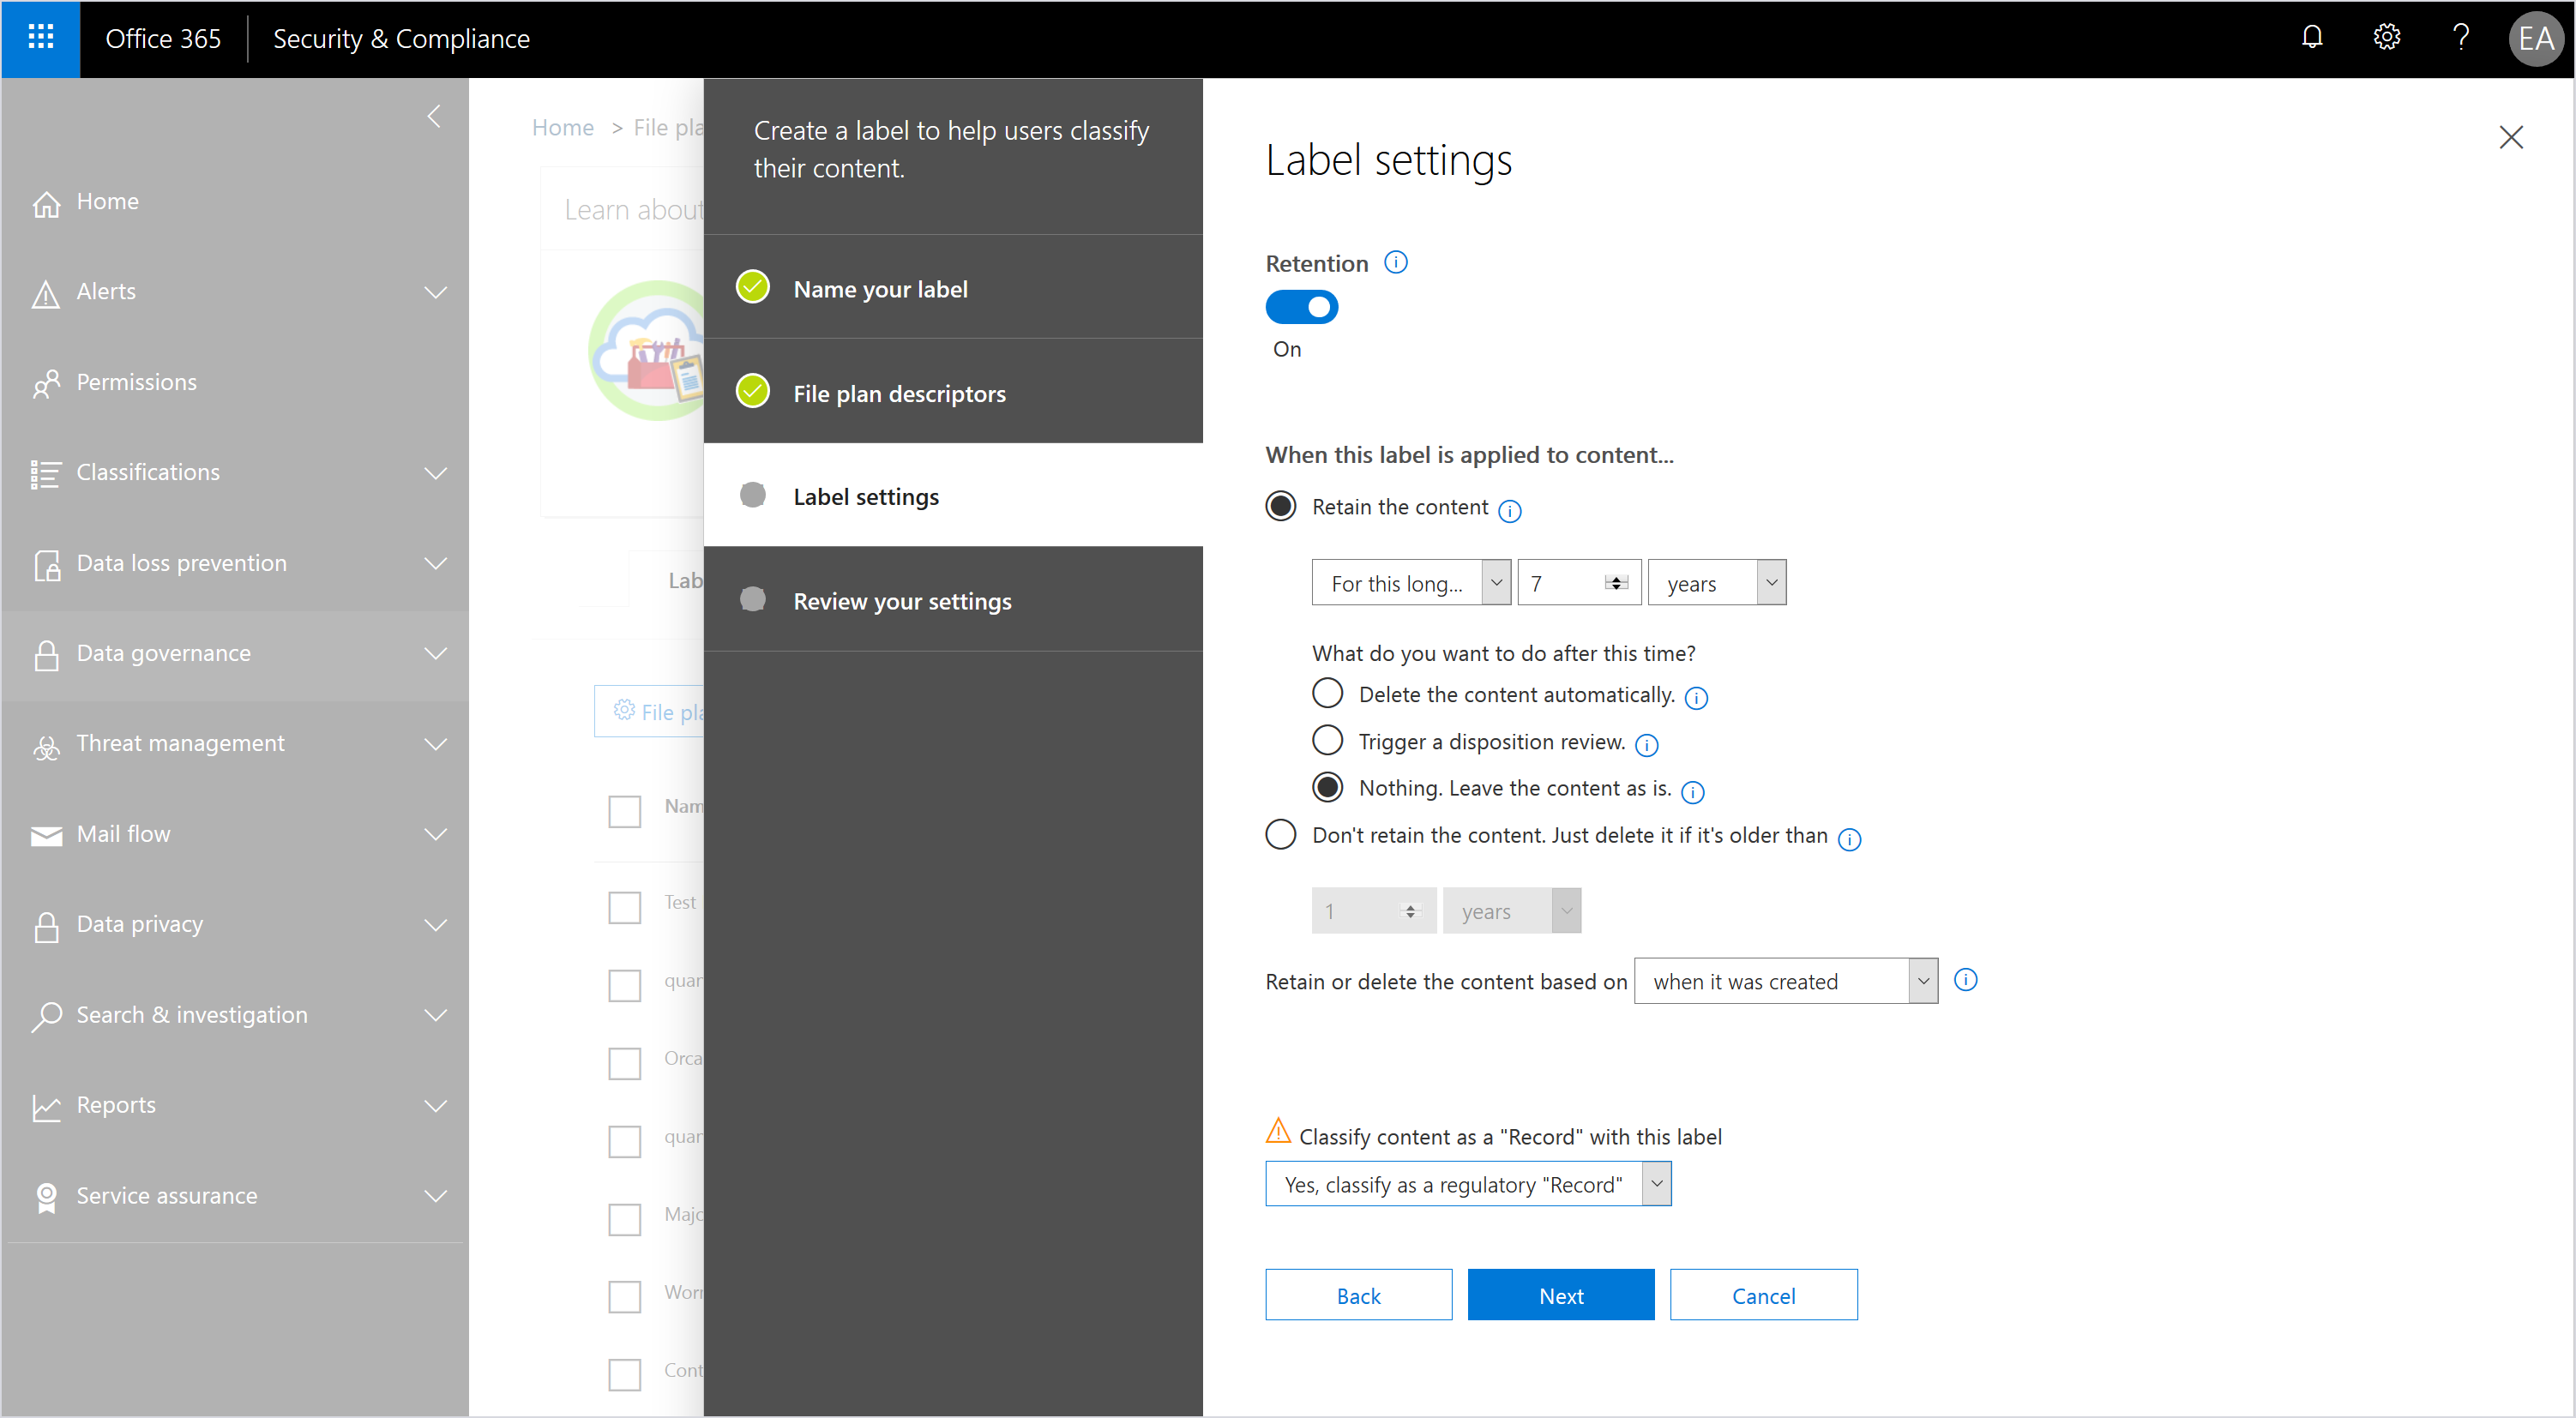 Screenshot of a label setting in the Office 365 Security & Compliance dashboard.